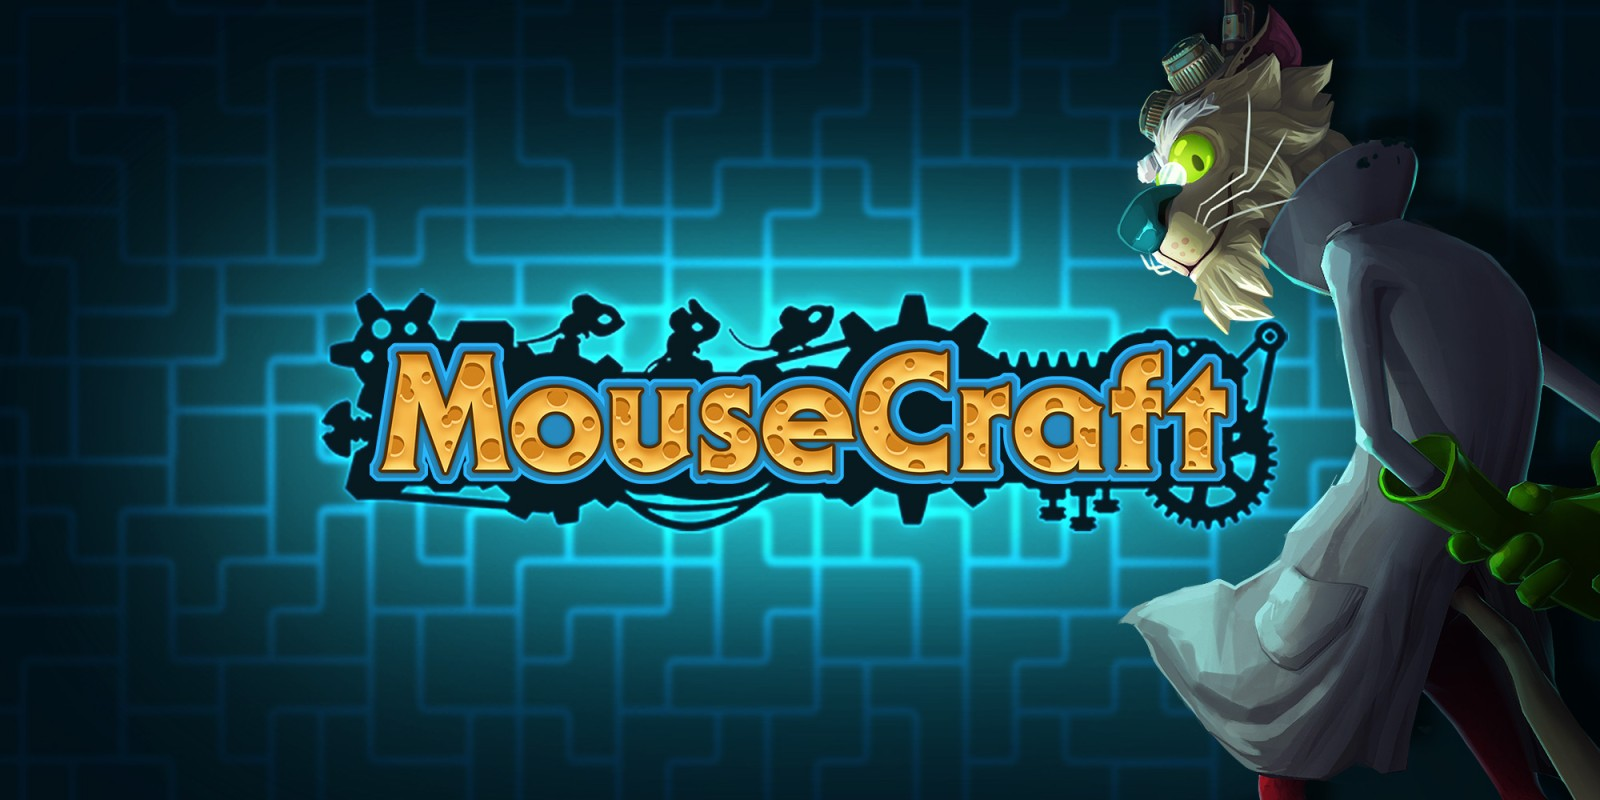 MouseCraft releasing on Switch this month - Nintendo Everything